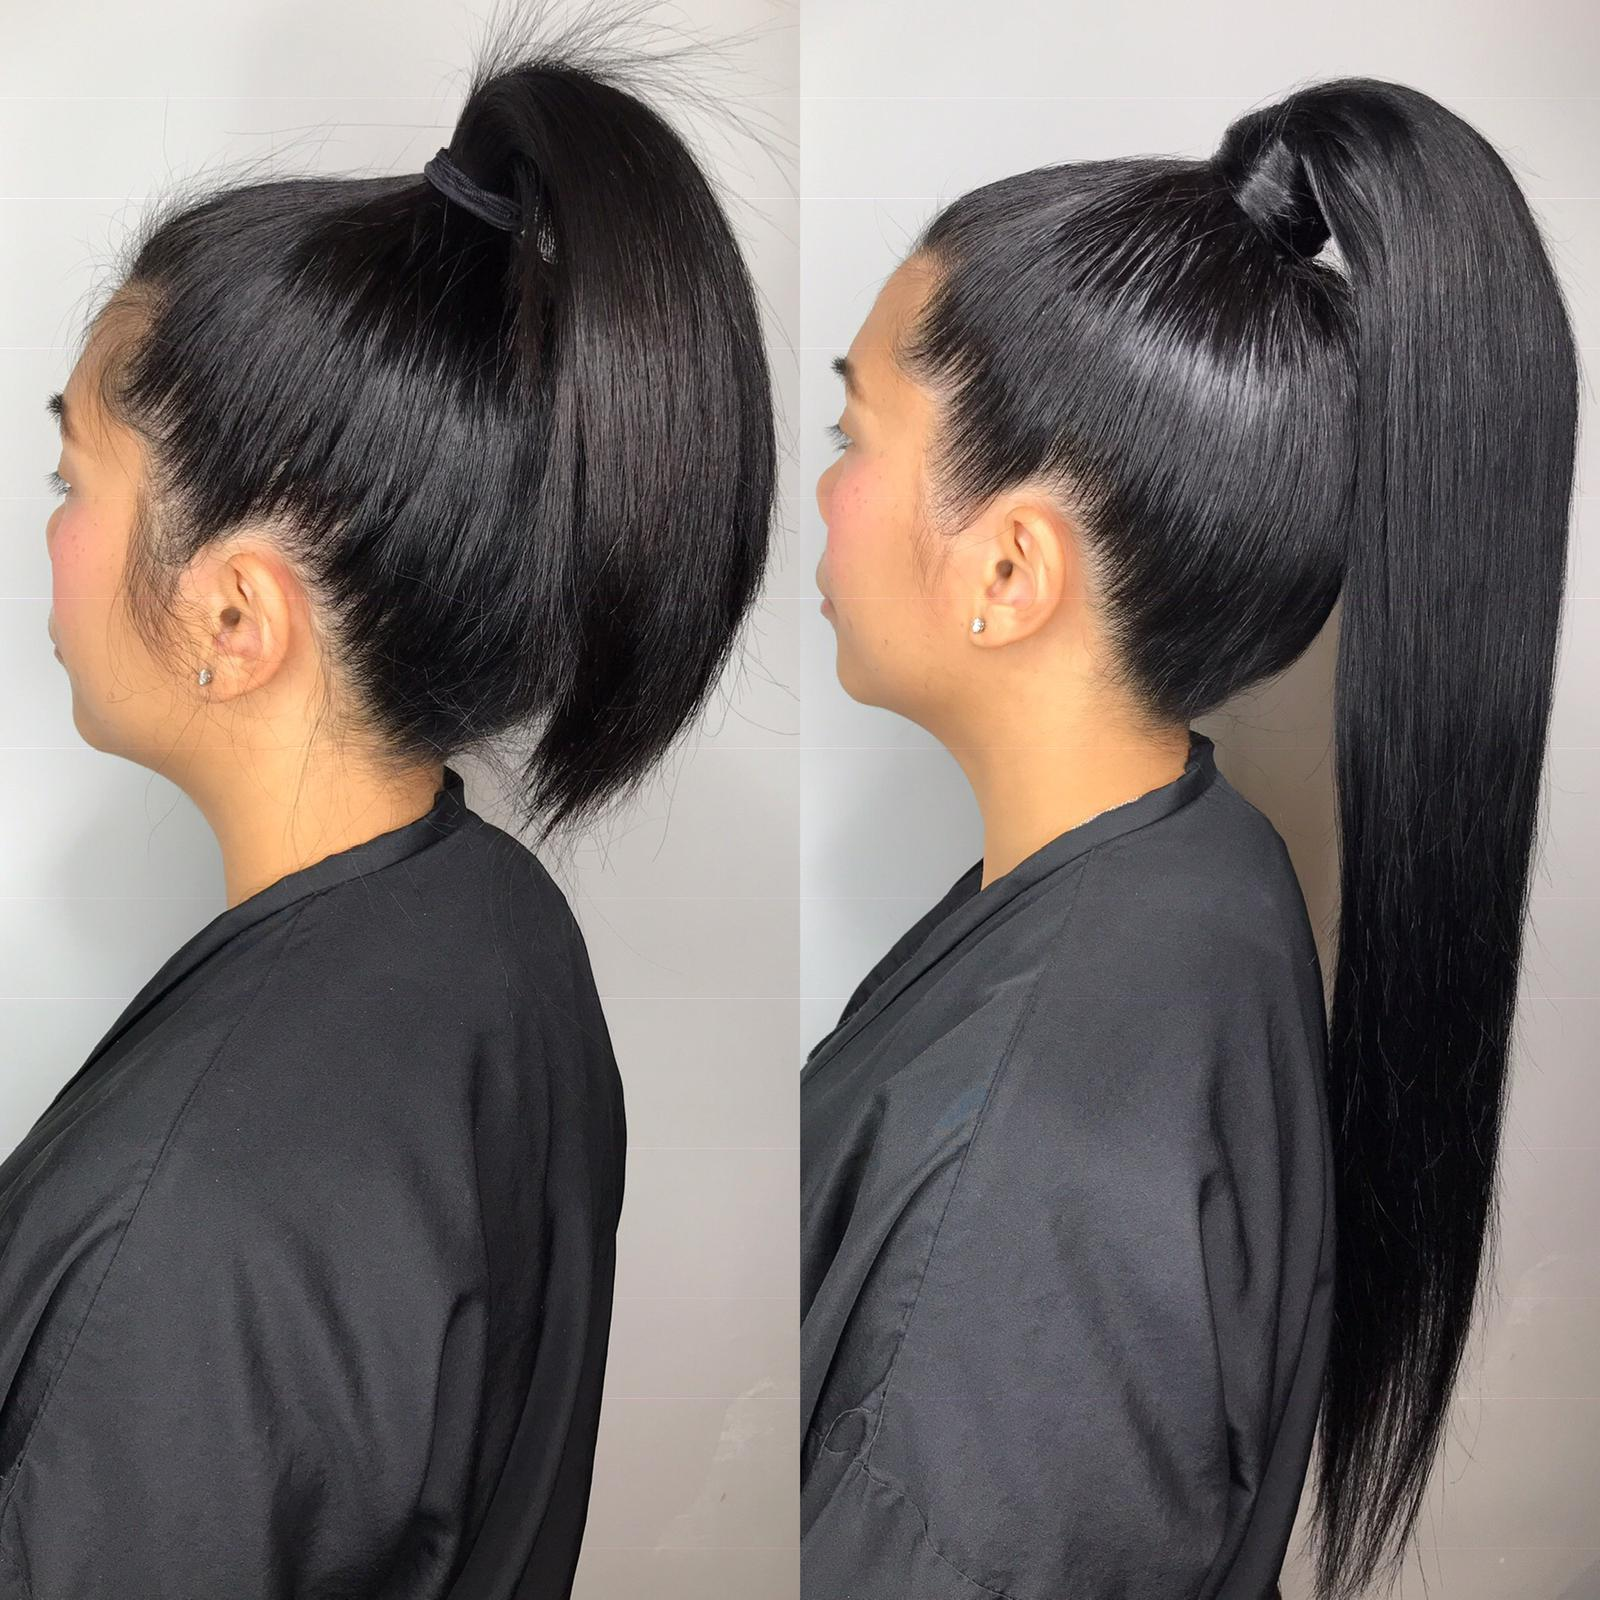 Ponytail Clip-in - Heavenly vibes